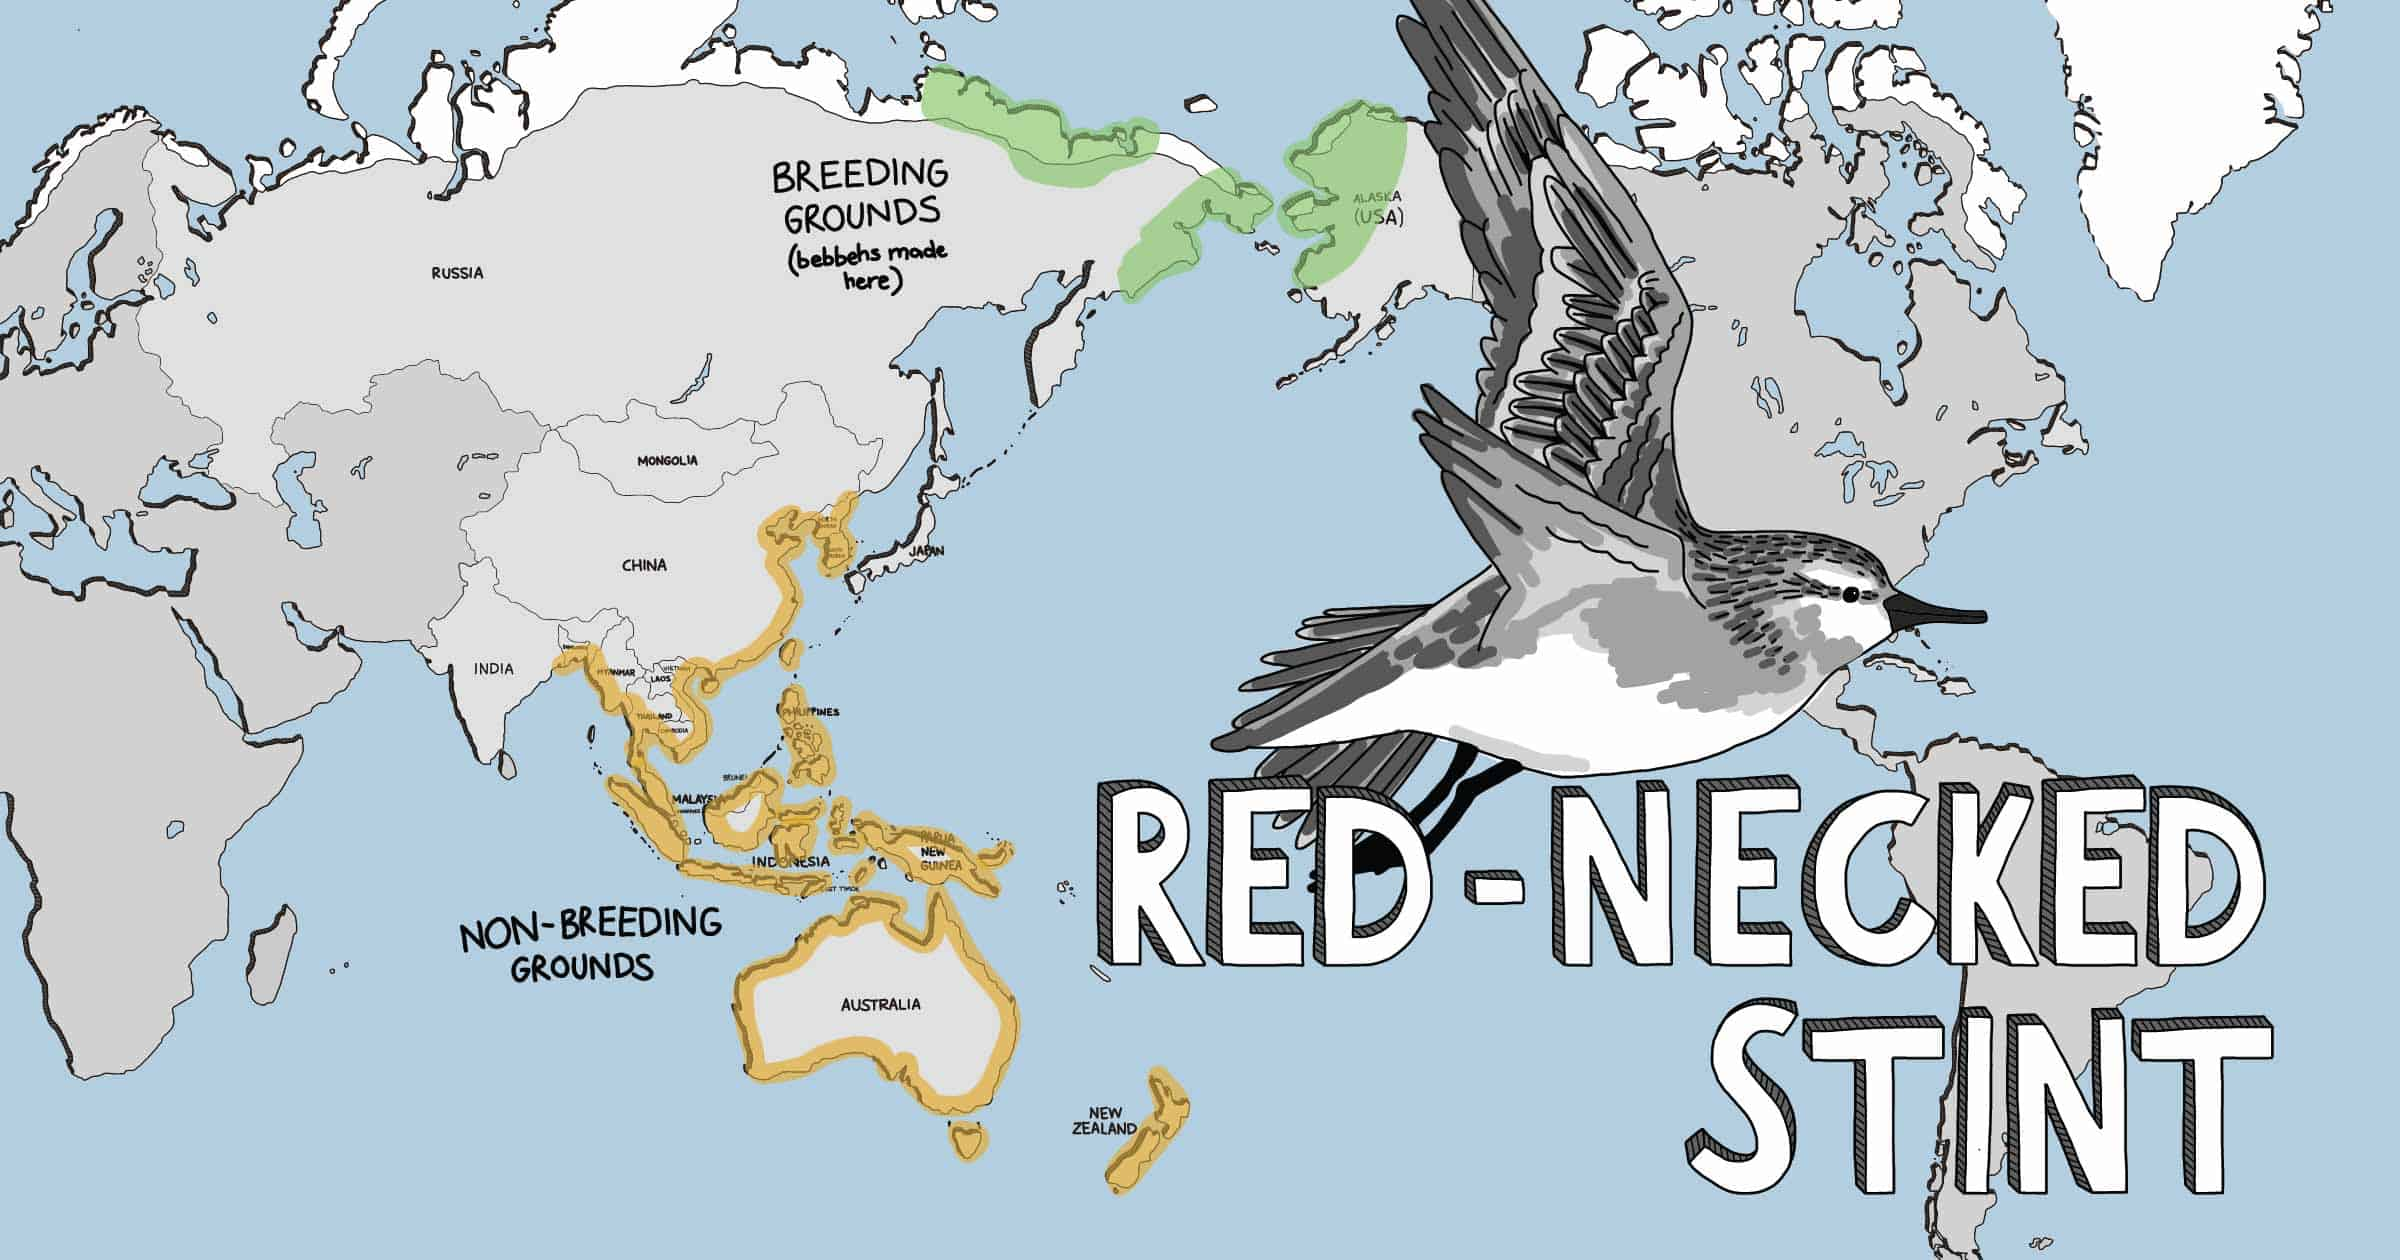 Cartoon world map showing distribution of the Red-necked Stint